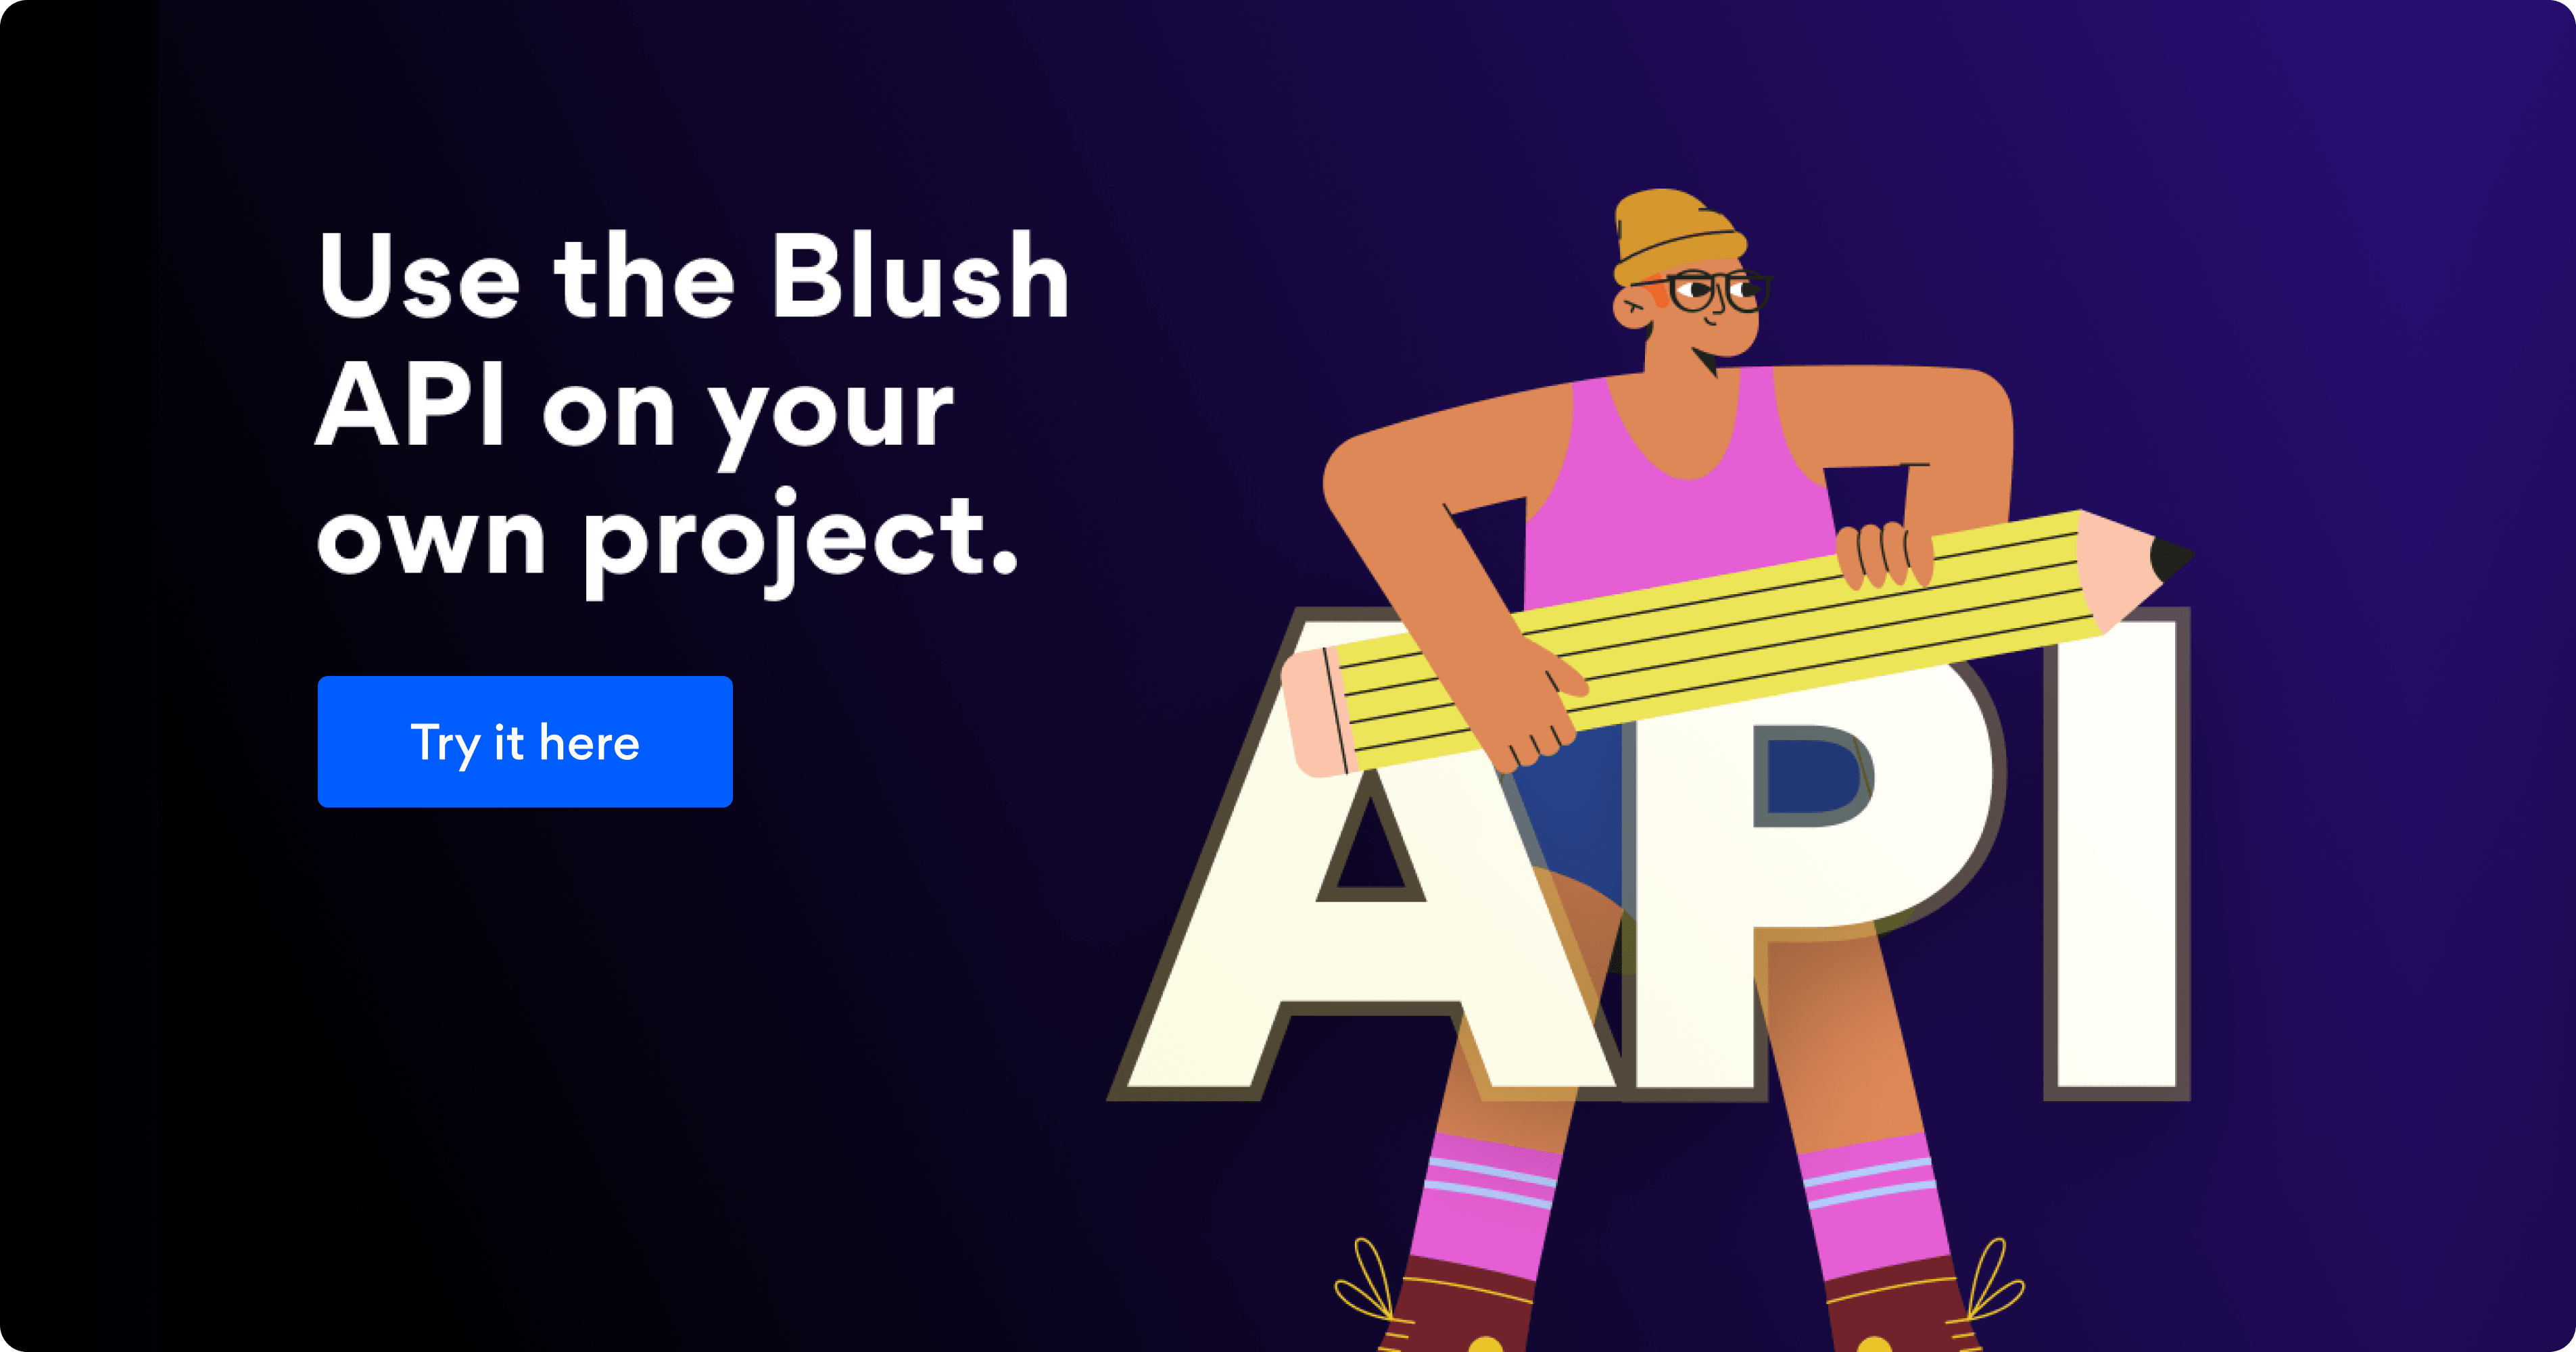 Use the Blush API on your own project. Try it here!